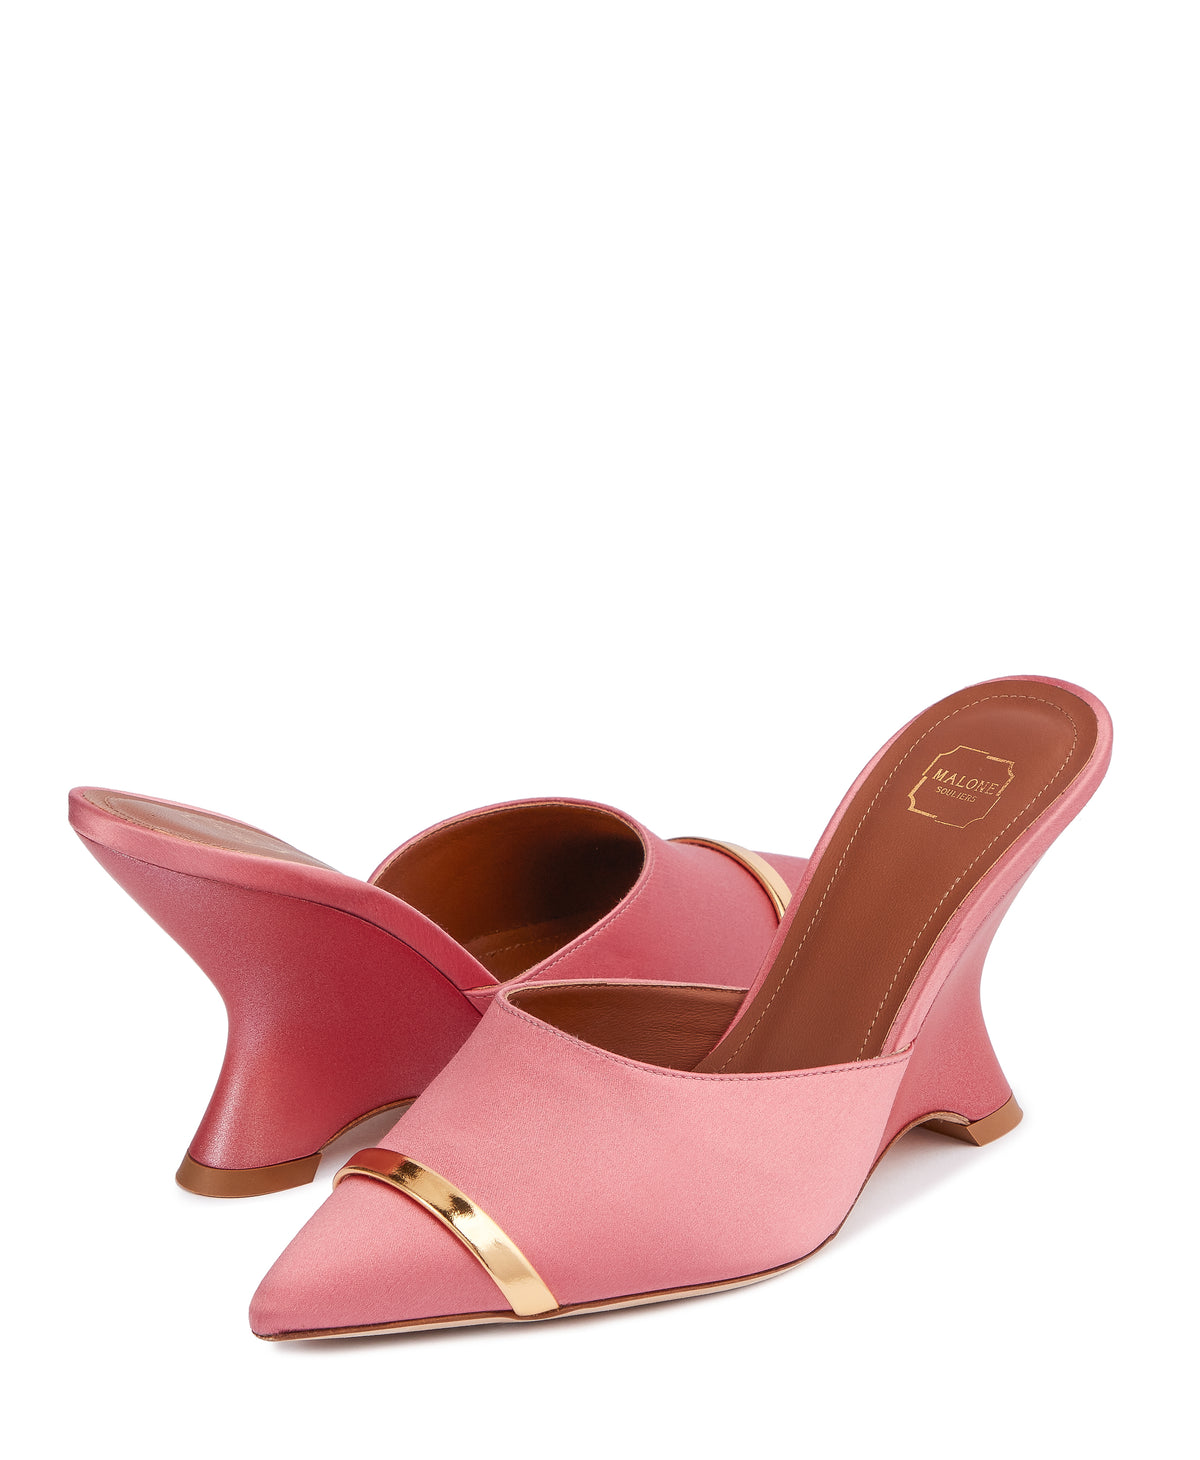 Women's Pink Wedge Mules With Pointed Toe Malone Souliers Marilyn